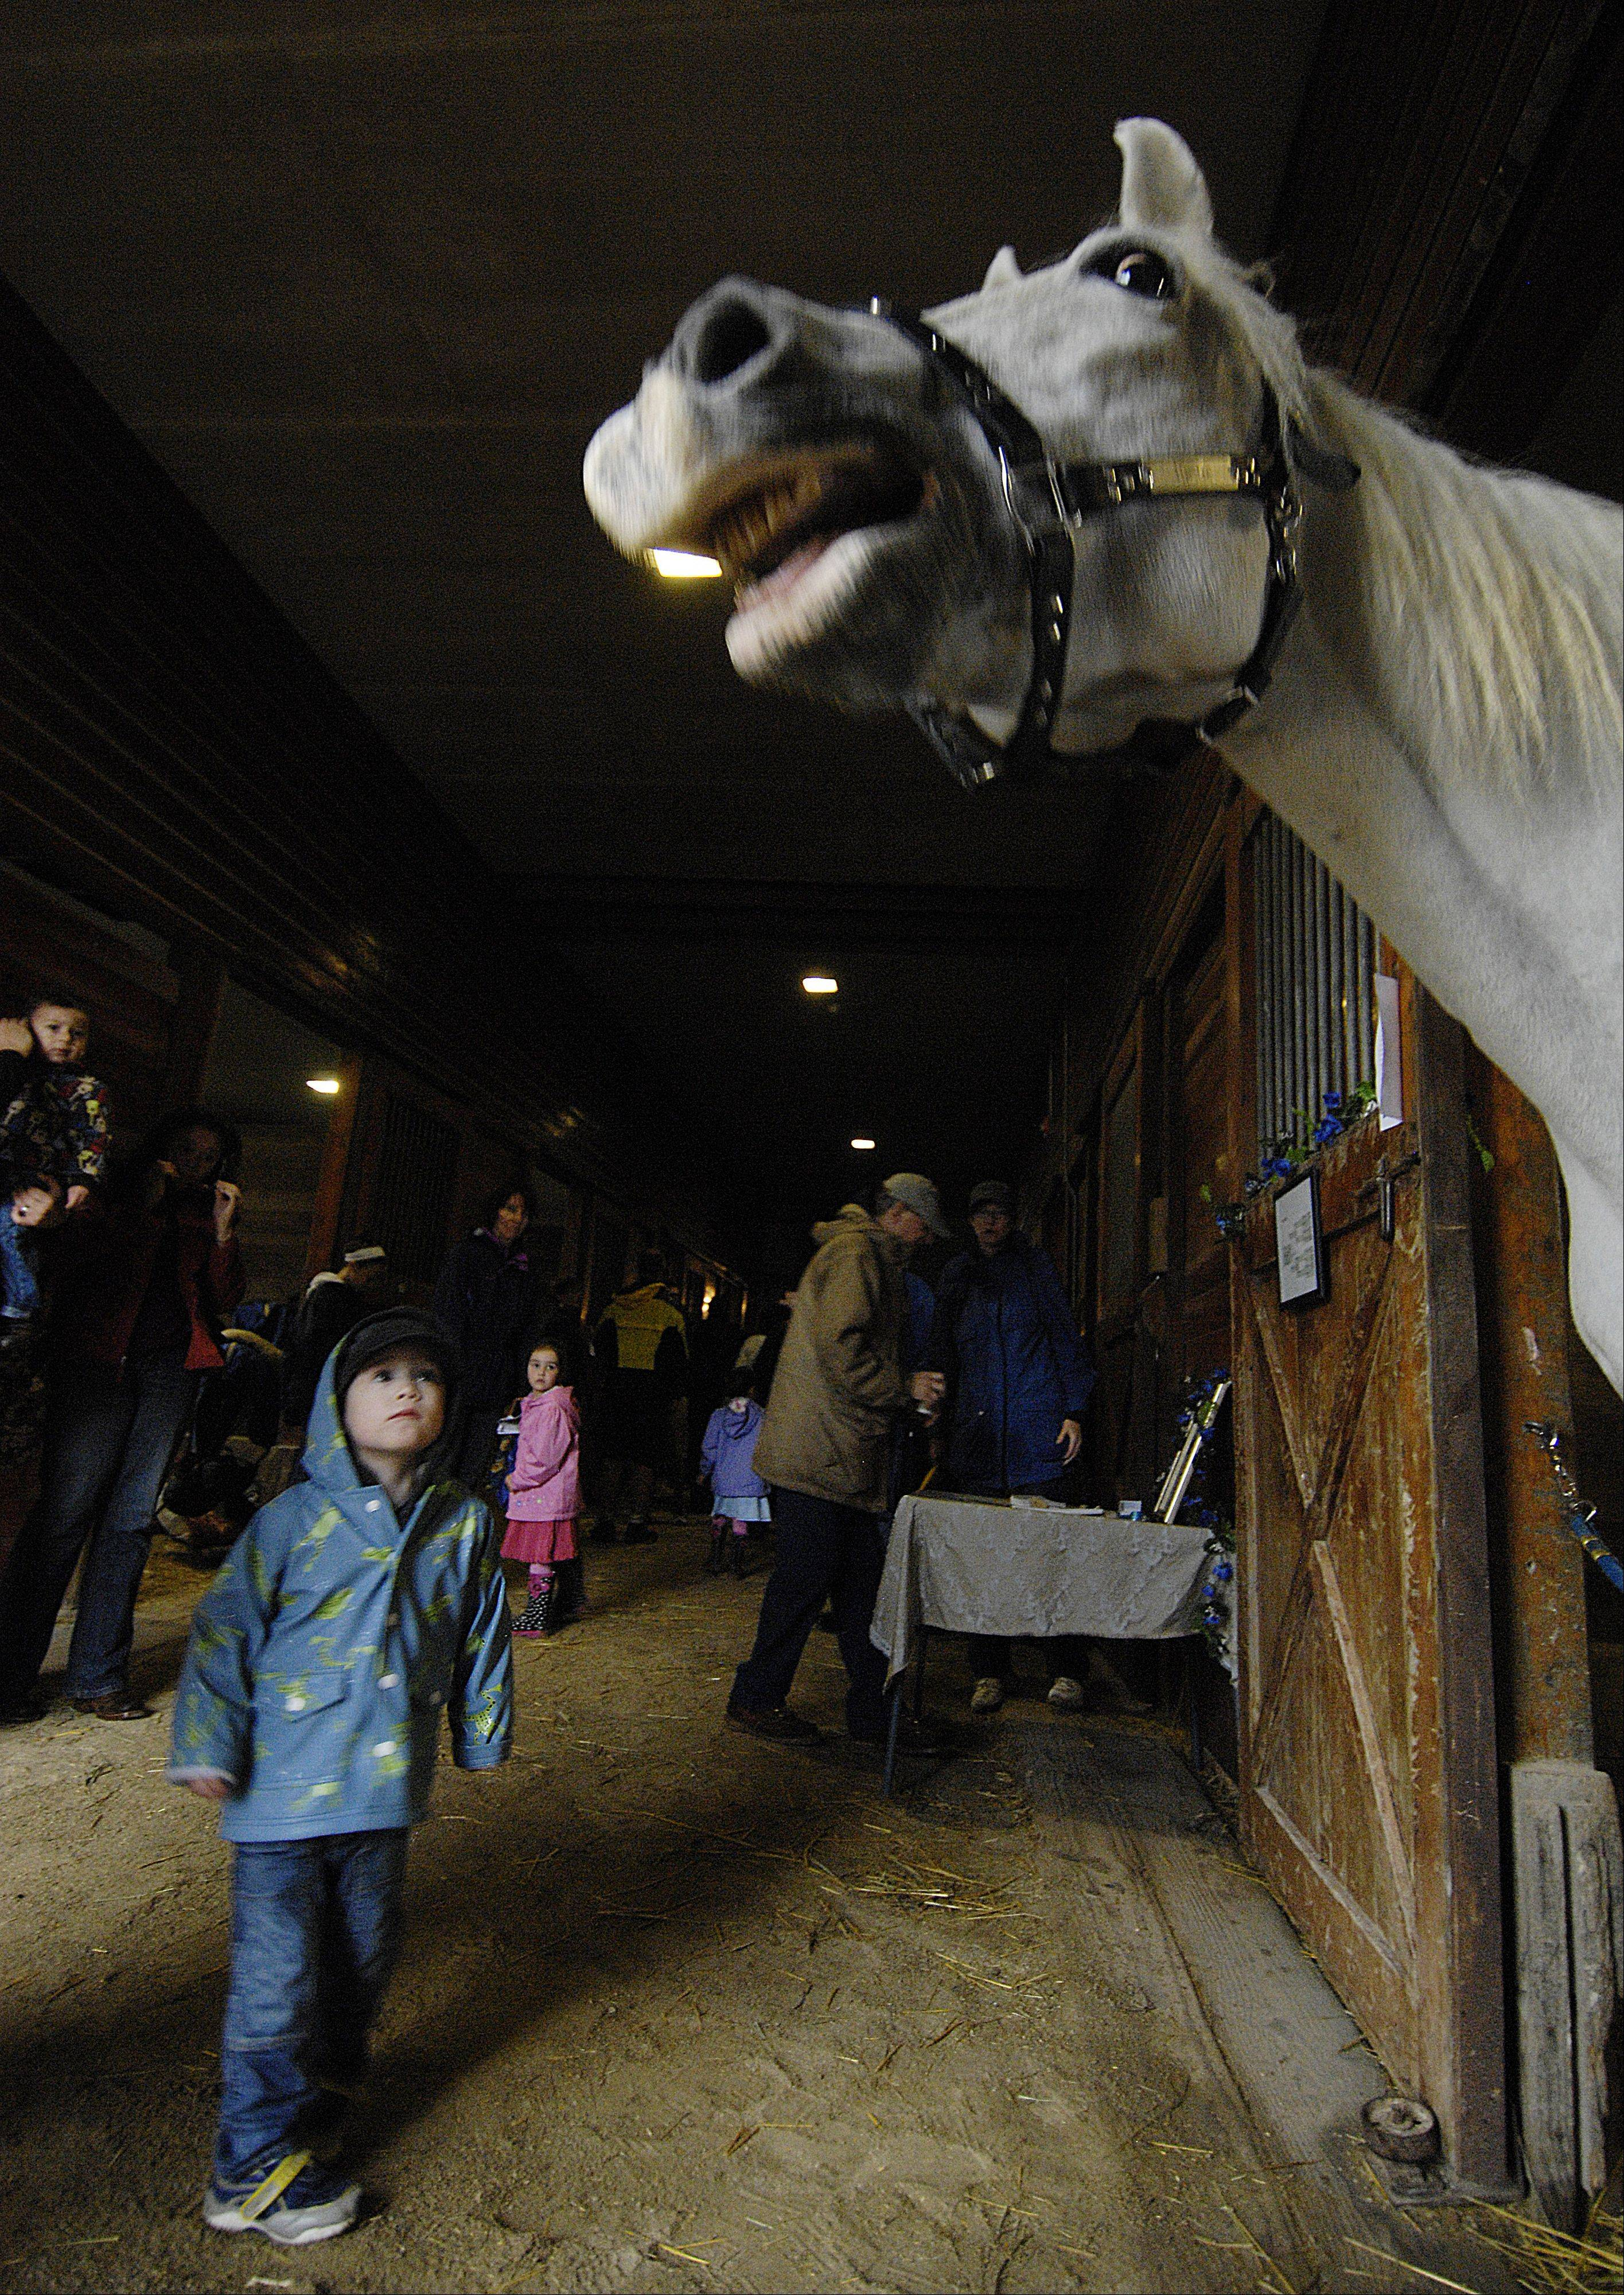 Kieran Quealy, 3, of Westmont listens as Ilustre neighs in a stable during the Forest Preserve District of DuPage County's annual Danada Fall Festival Sunday in Wheaton.